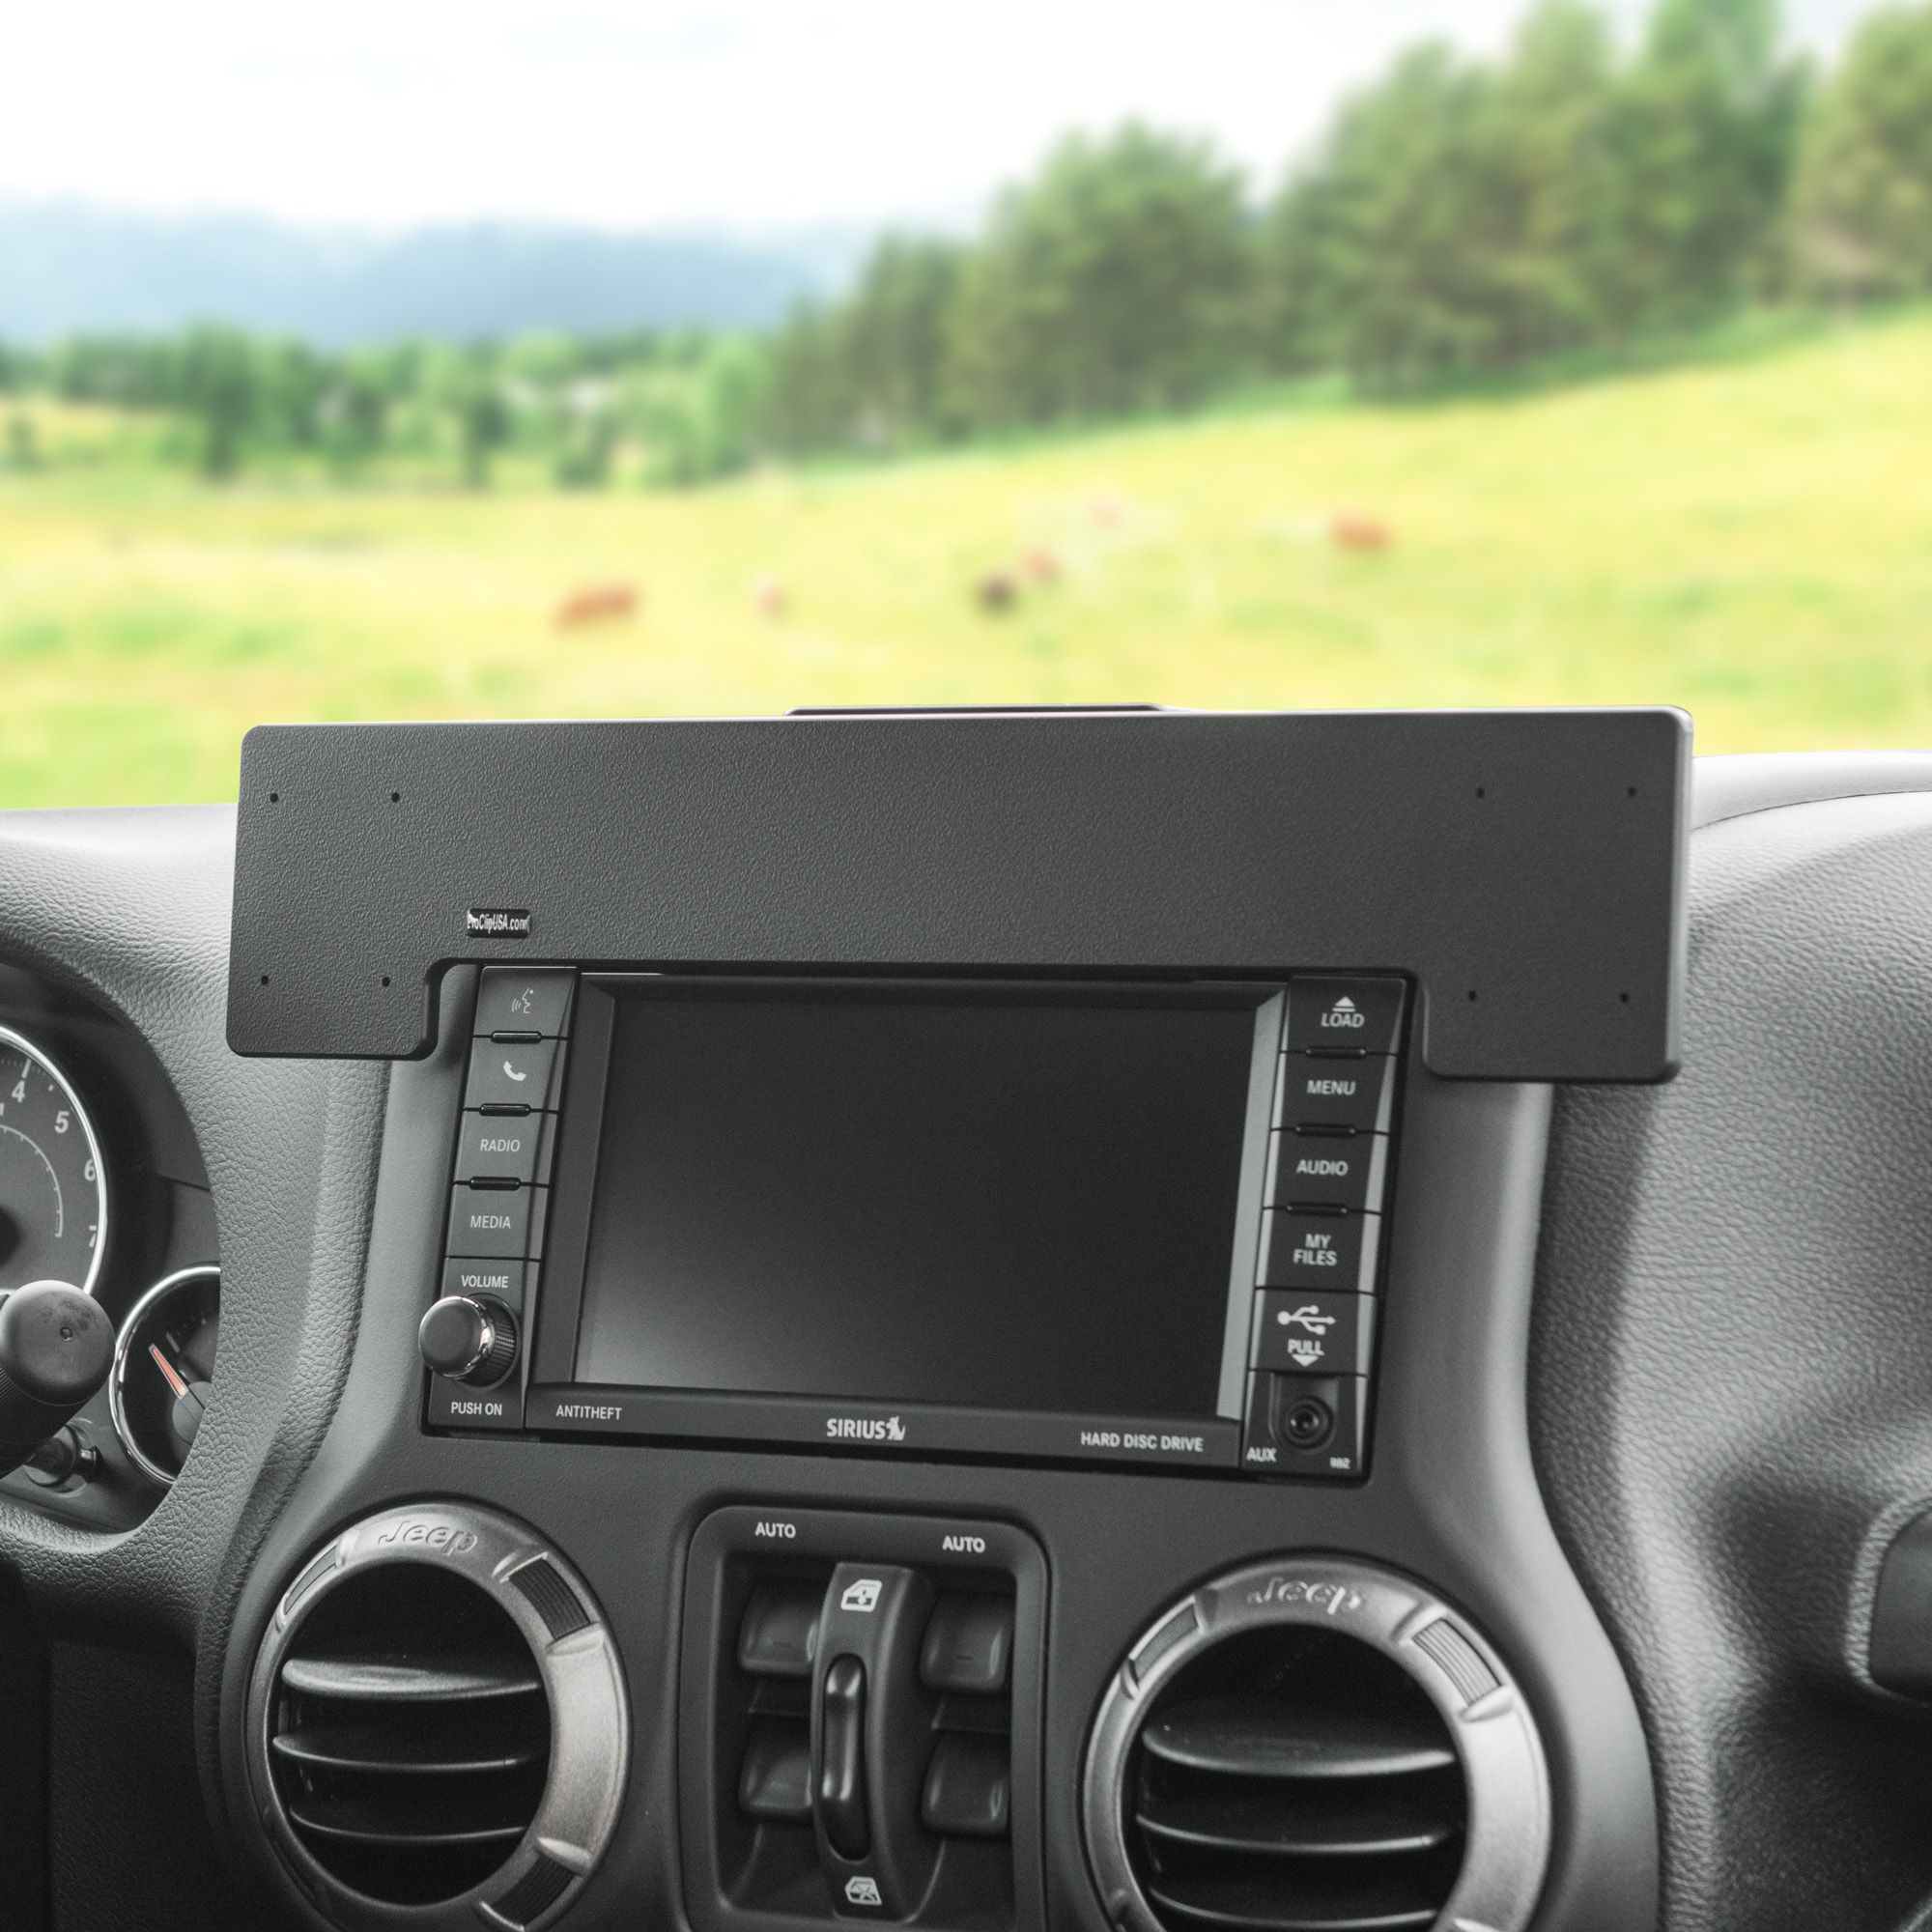 Upgrade Your Jeep Wrangler With A Proclip Extra Strength Center Dash Mount Item 213495 Jeepwrangler Jeep Wrangler Jeep Wrangler